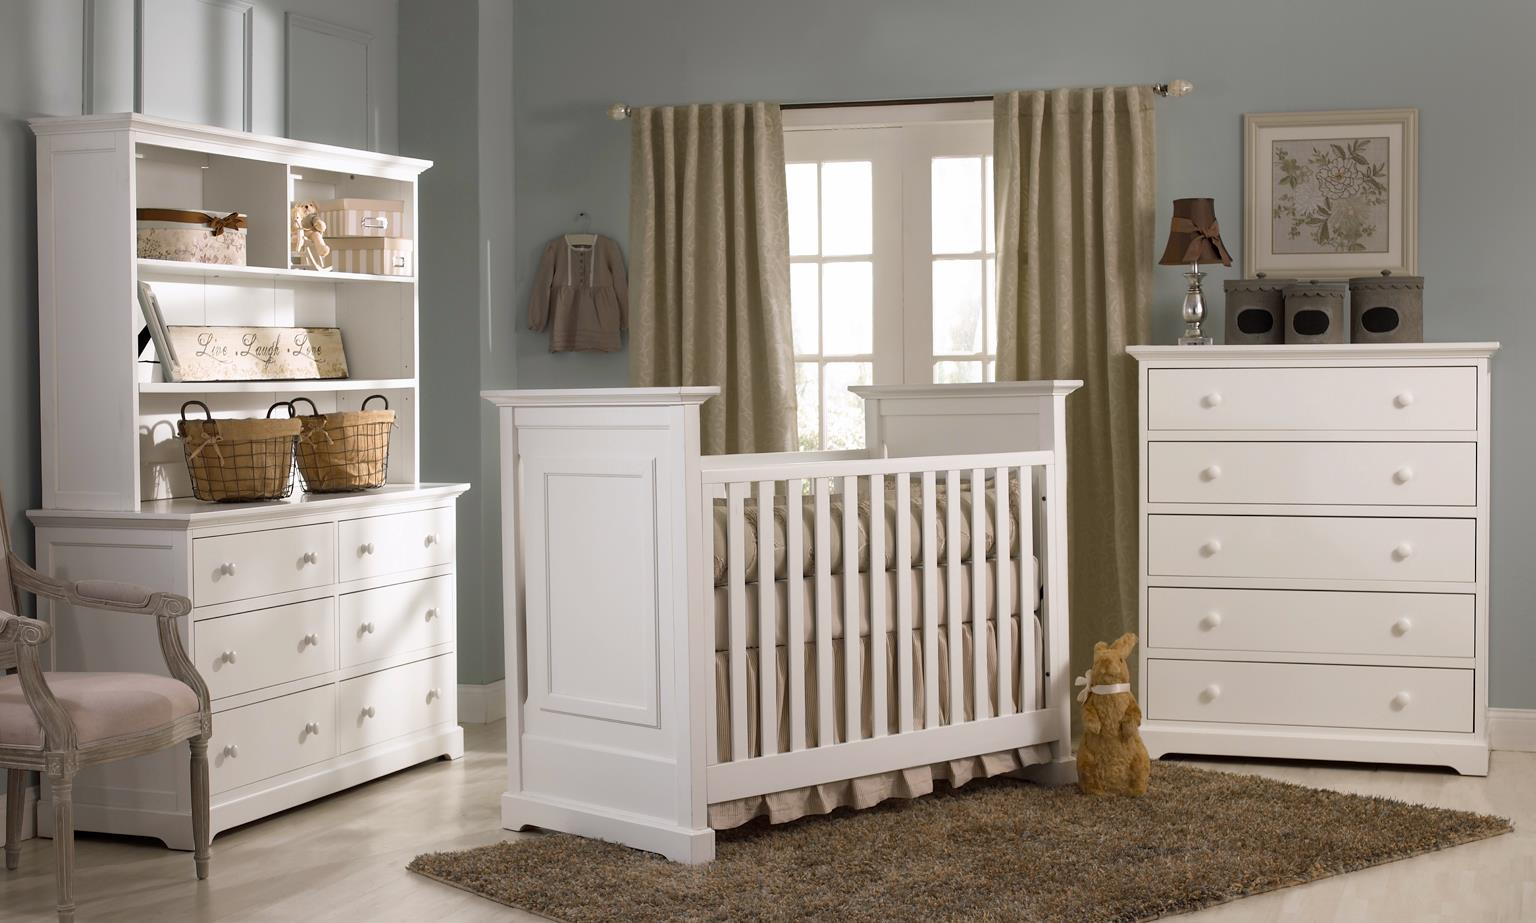 Unique Baby Boy Cribs Royals Courage Ideas Selecting Modern Crib For New Design